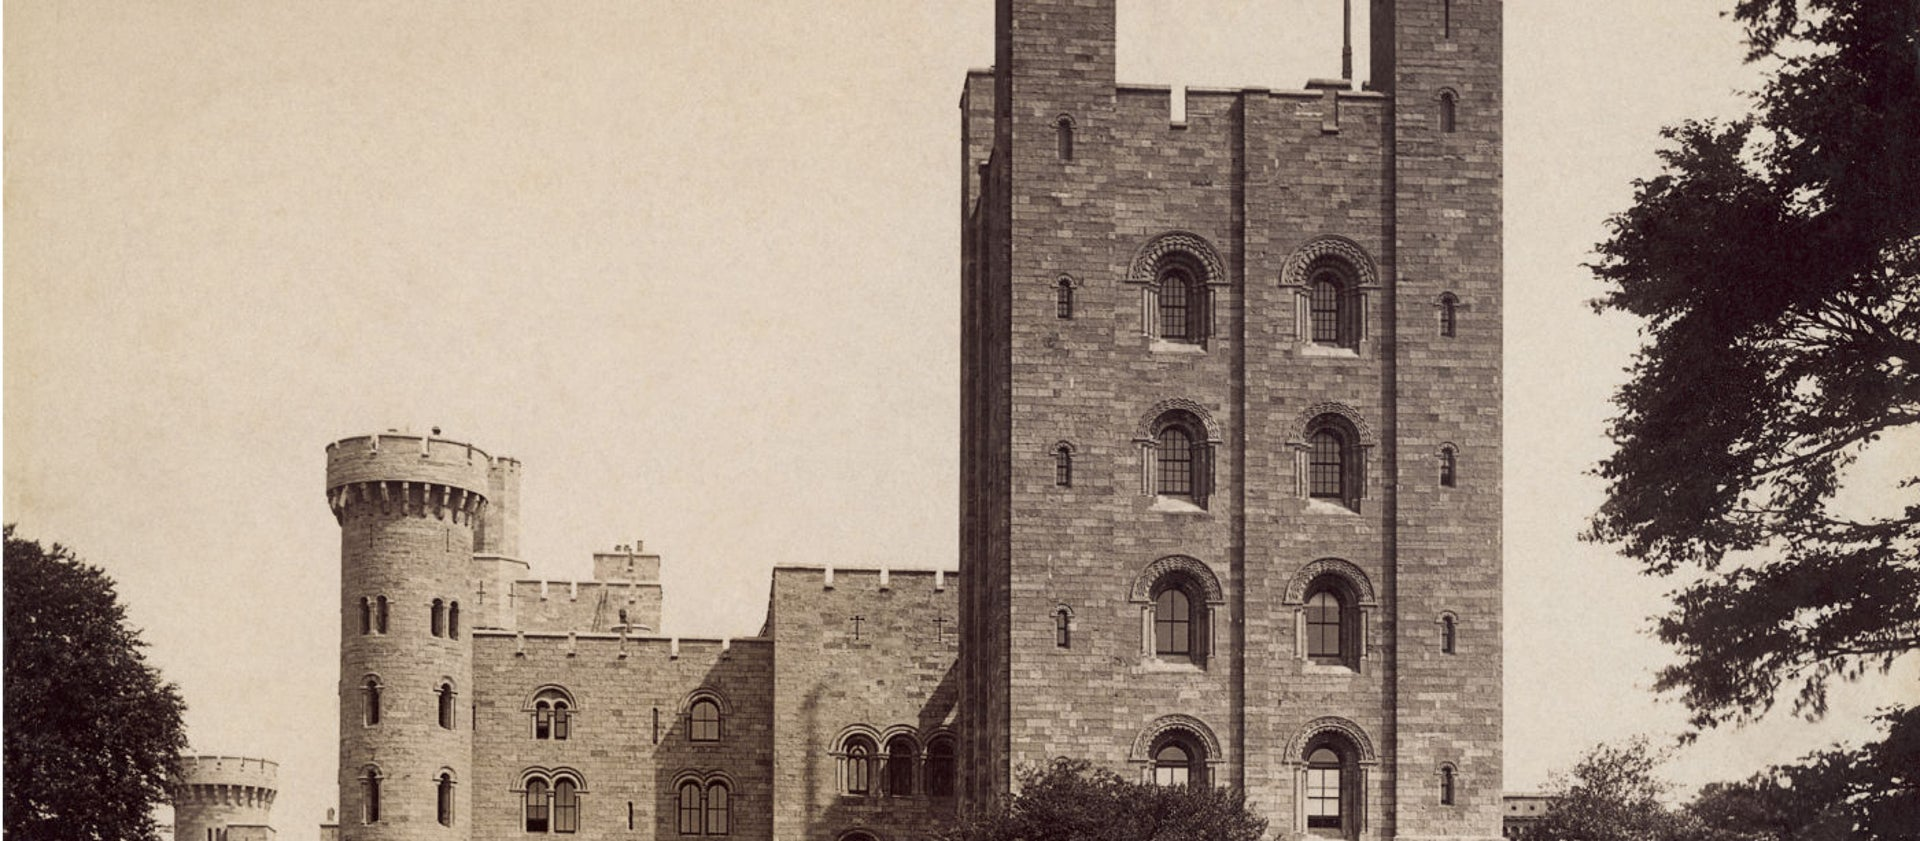 A brief history of Penrhyn Castle | National Trust